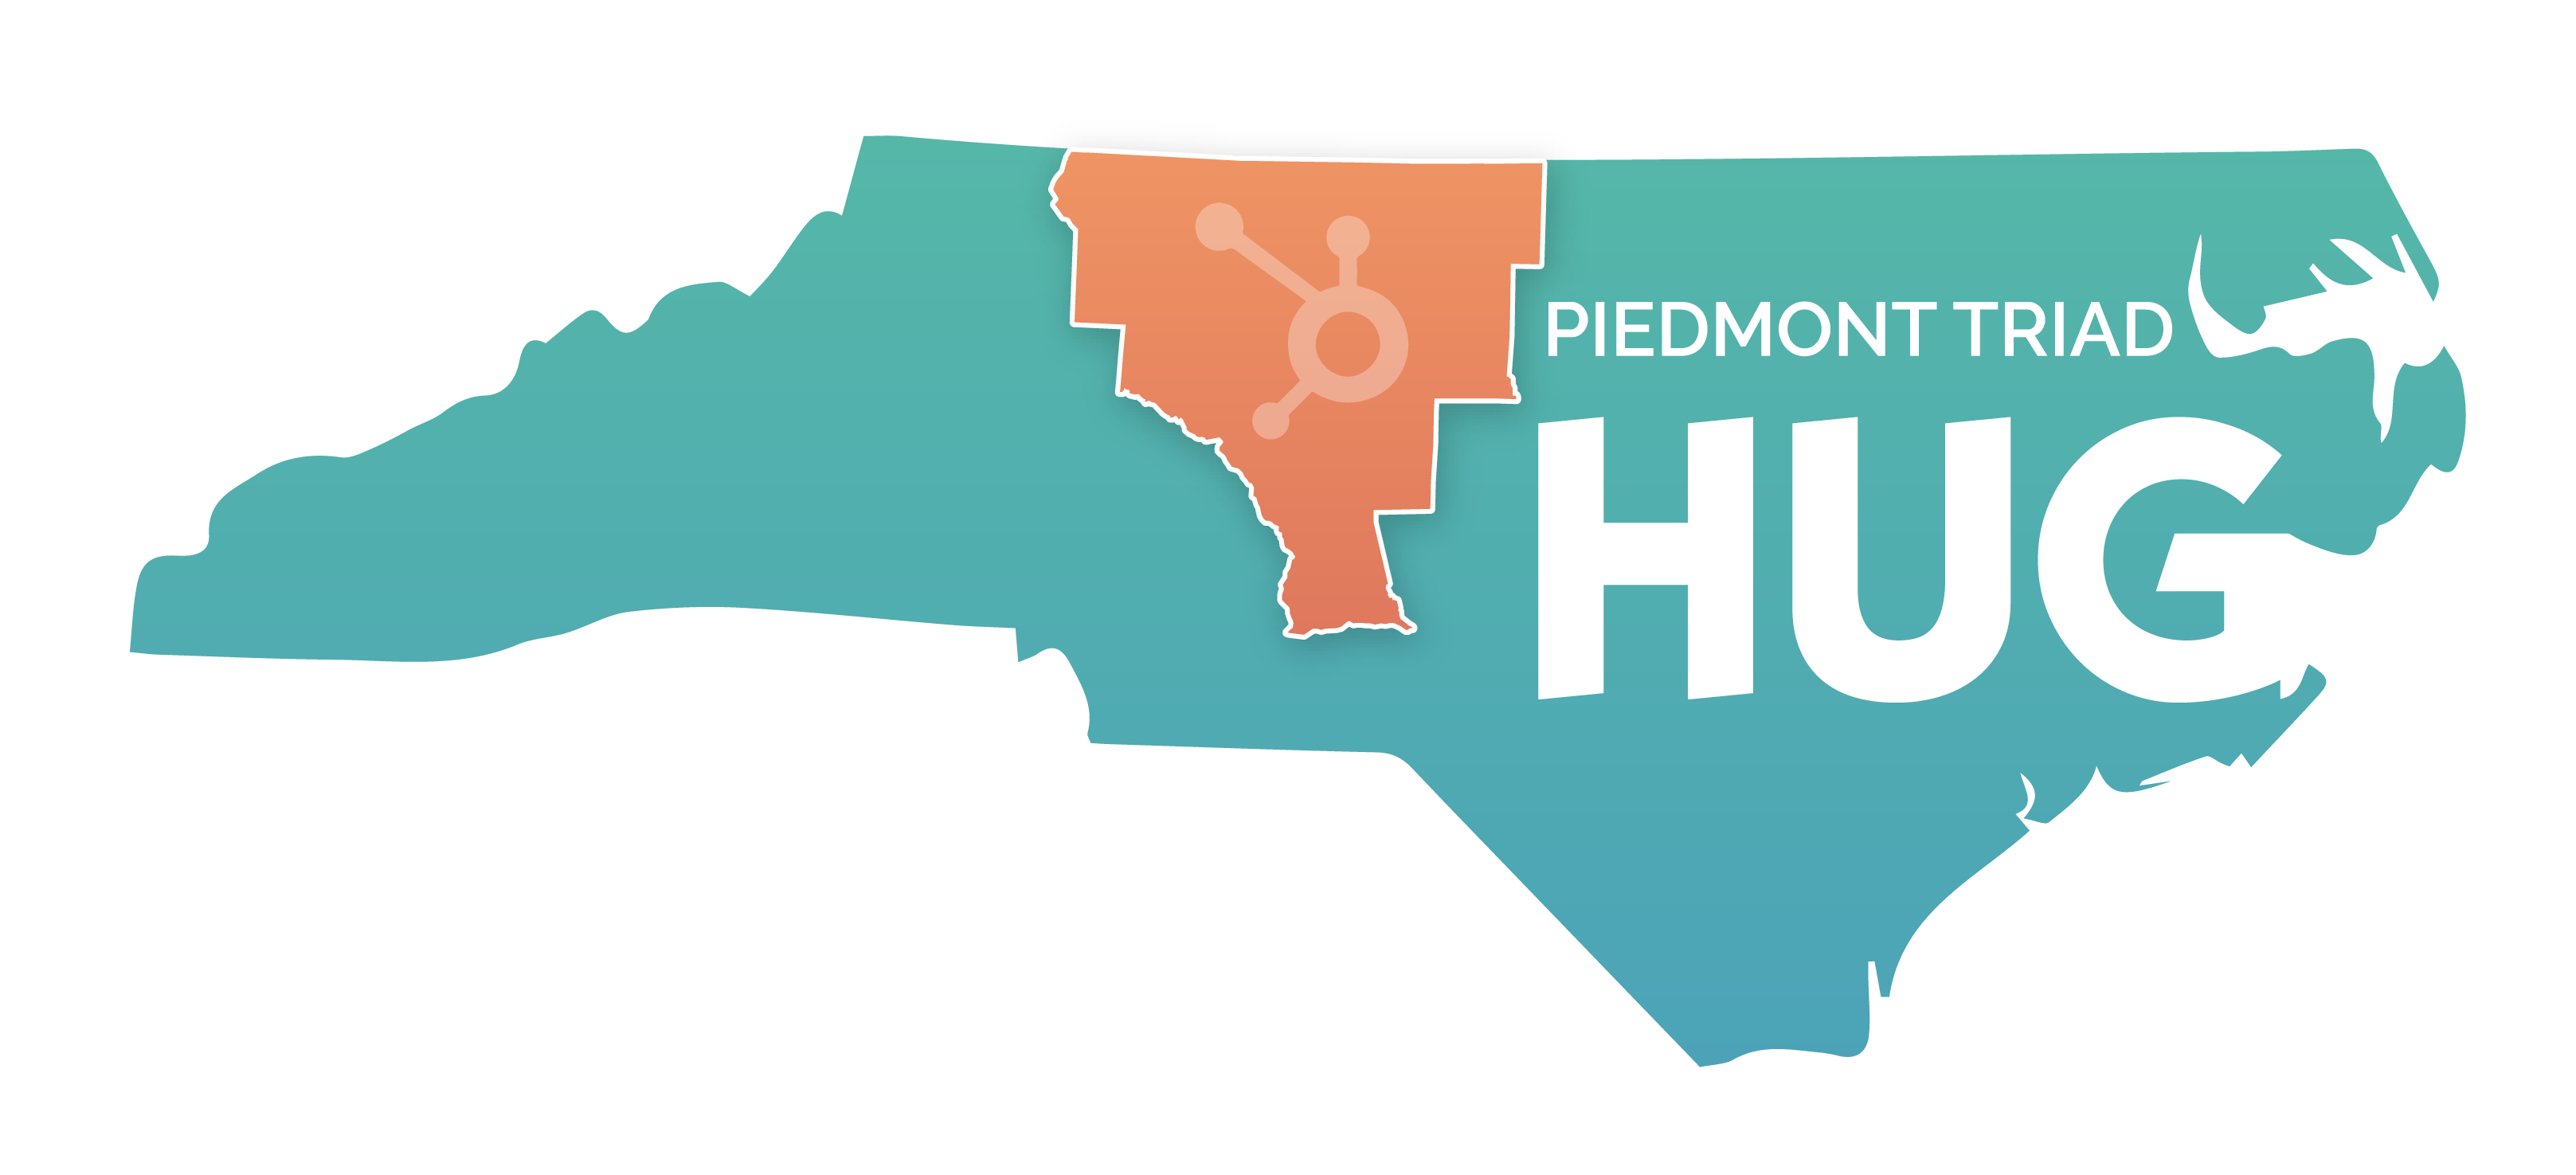 Piedmont Triad HubSpot User Group